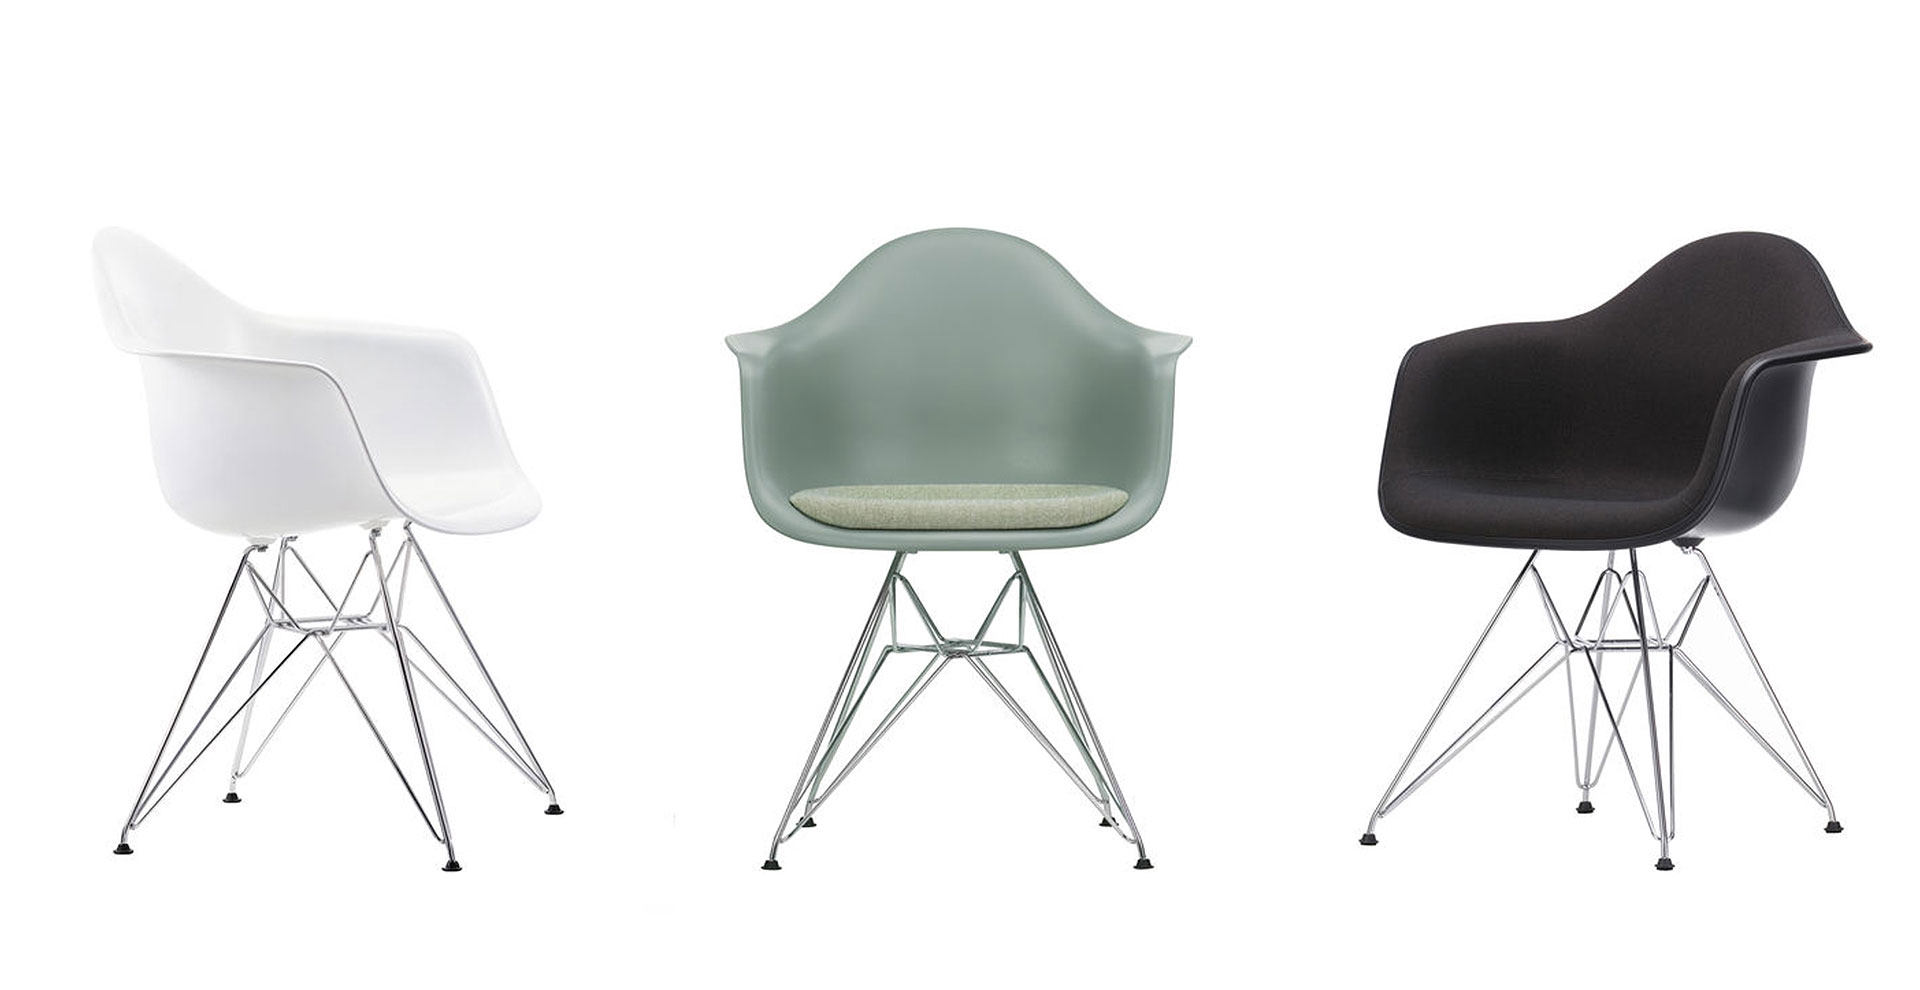 Sedia Vitra Eames Eames Plastic Side Chair Vitra Chair Eames Plastic Side Chair Vitra